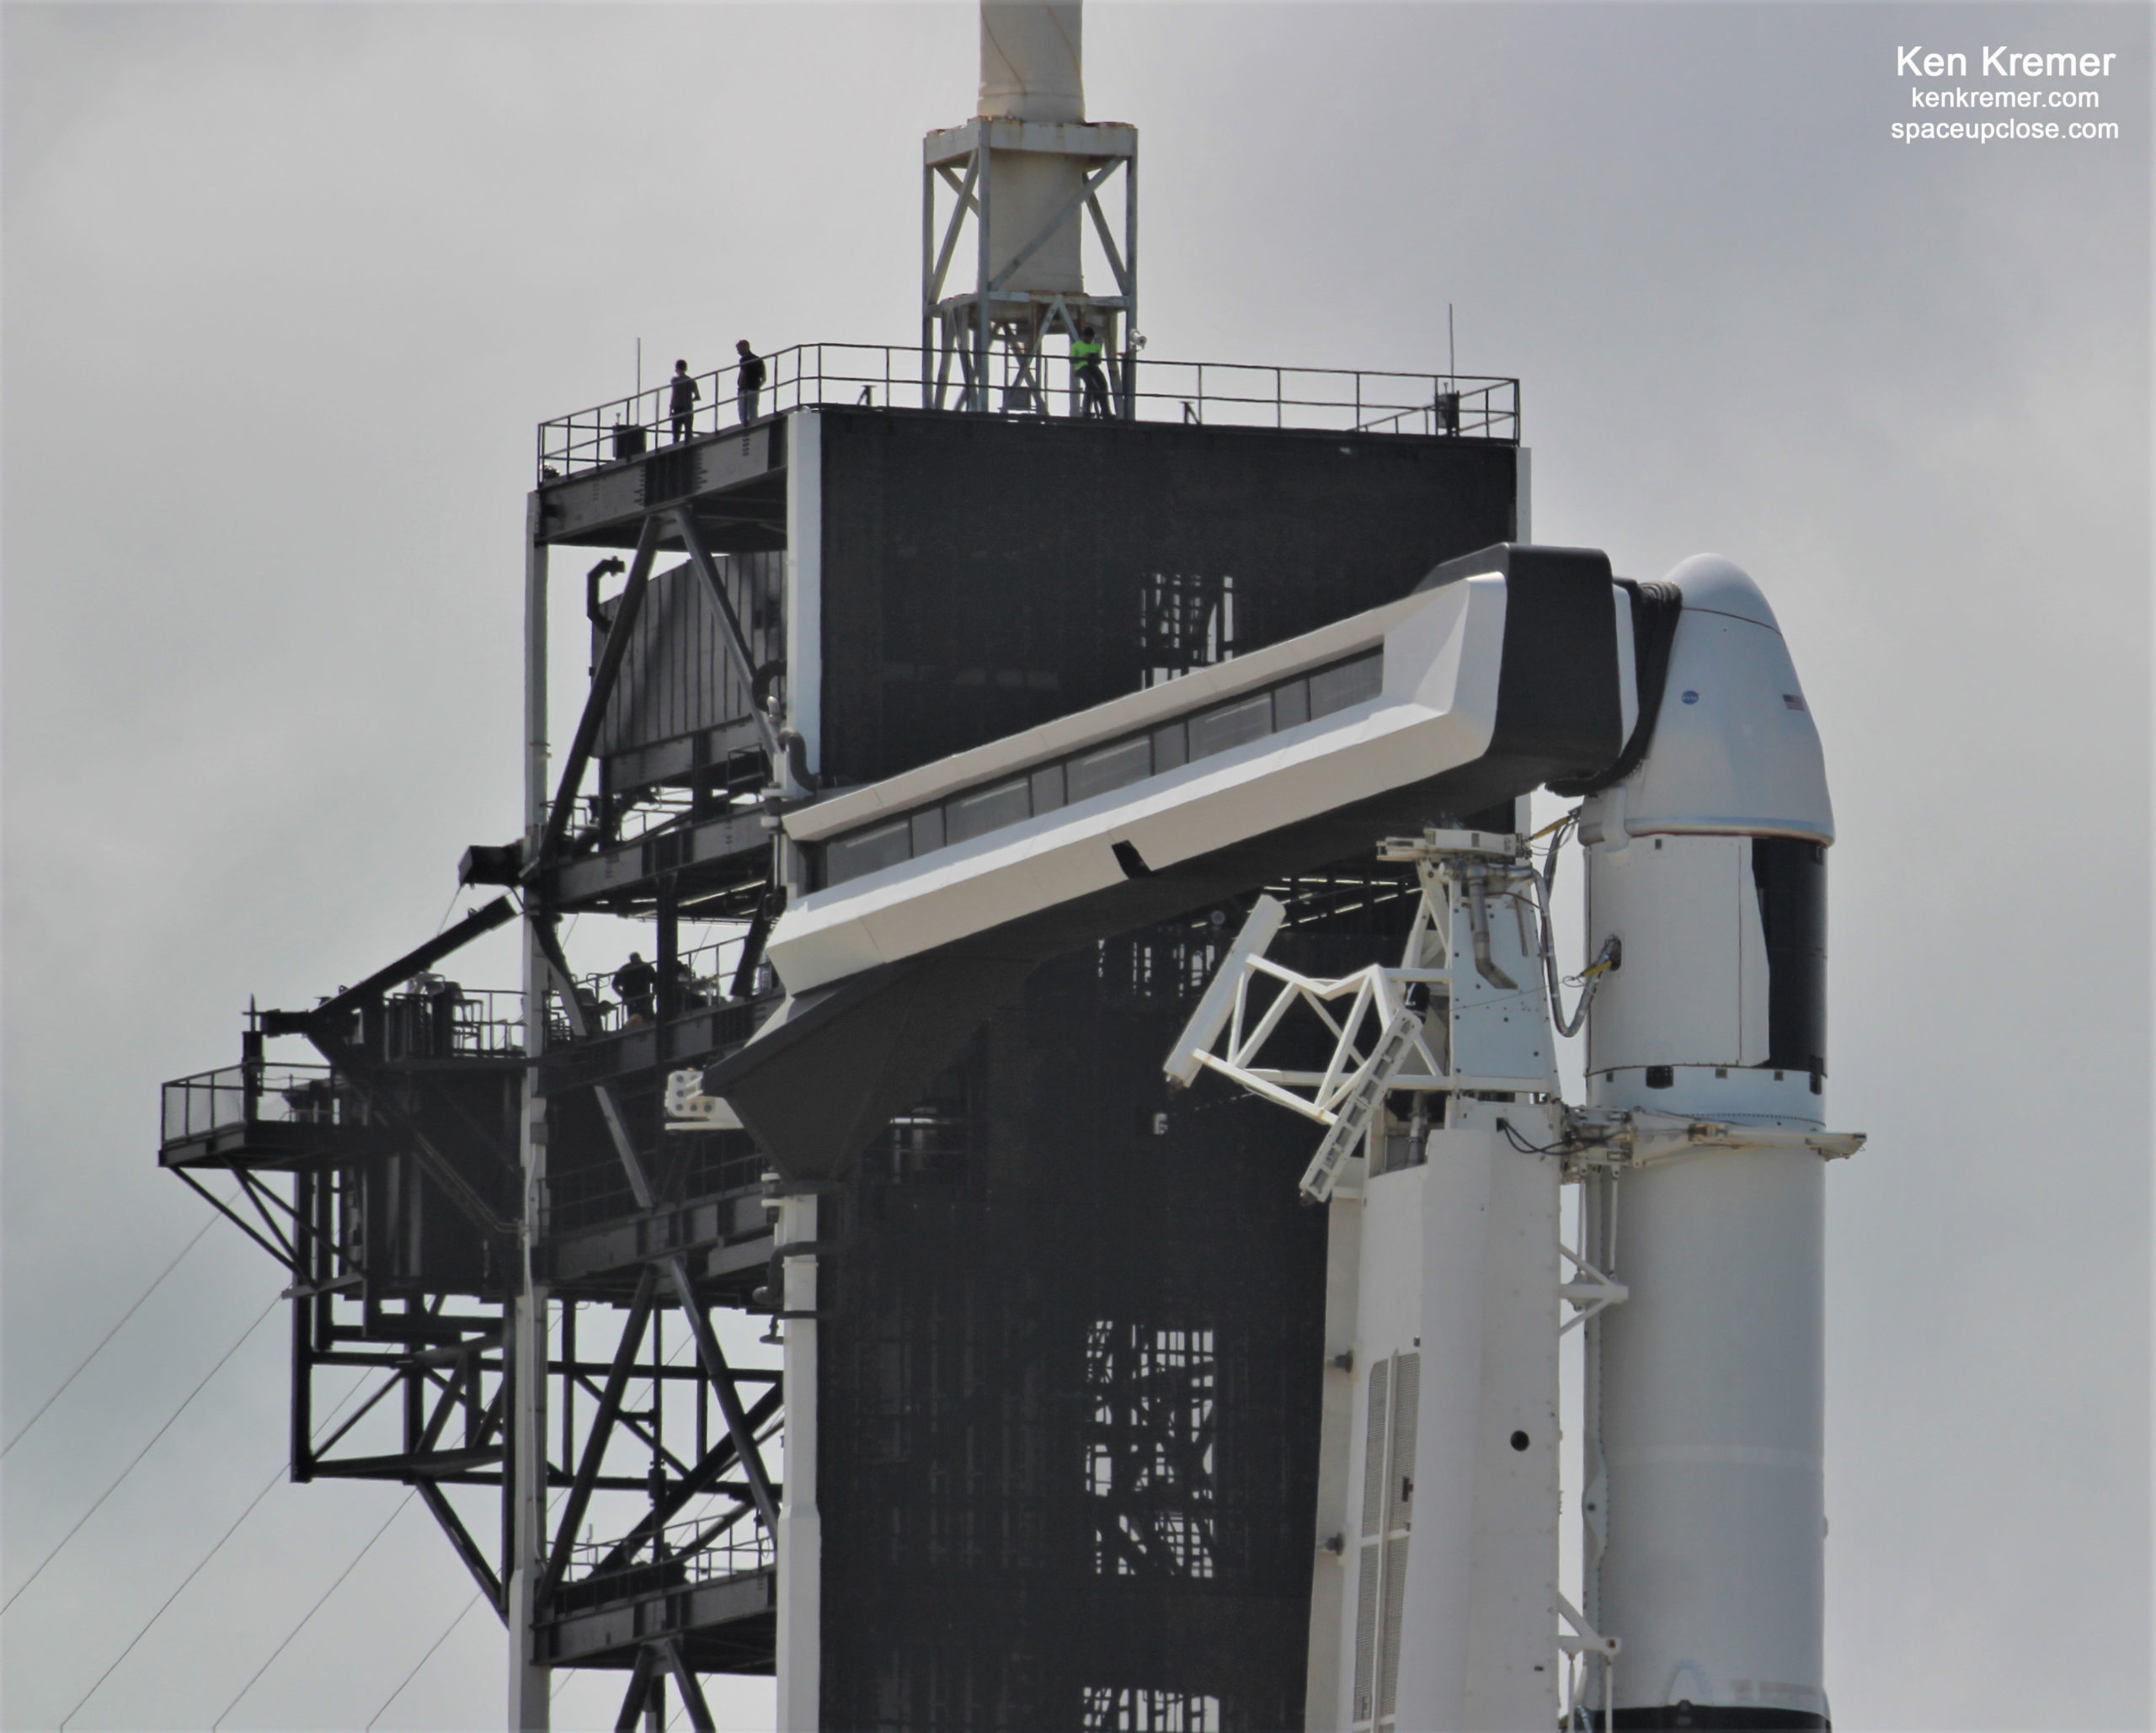 New Falcon 9 to launch New SpaceX Cargo Dragon Delivering NASA Science to Space Station June 3: Watch Live/Photos